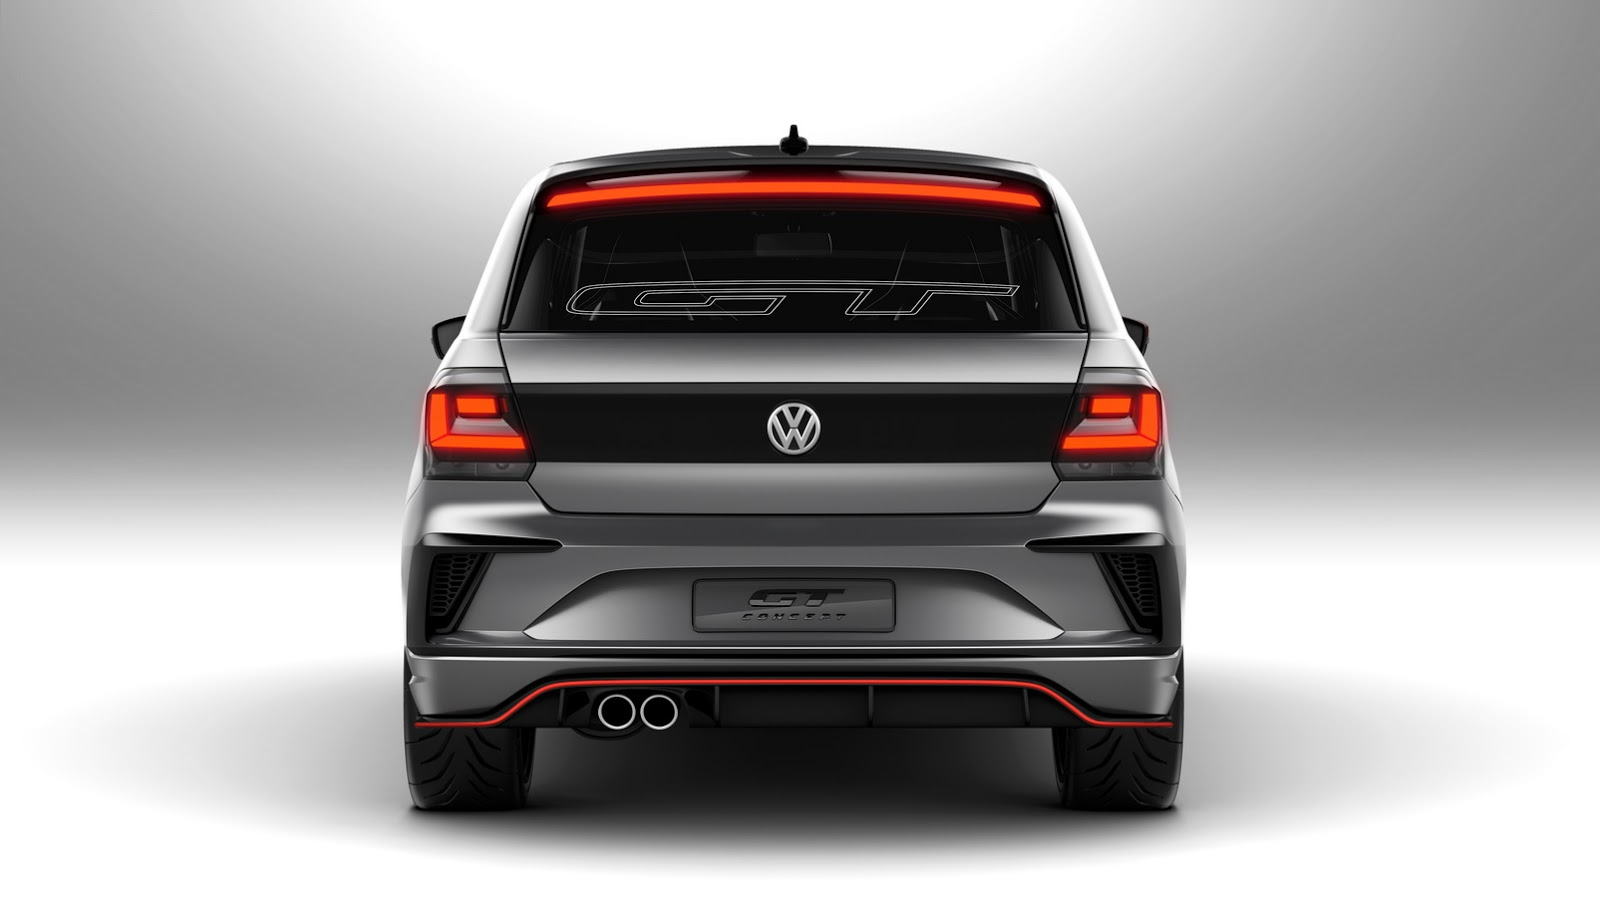 volkswagen unveils gol gt concept at sao paulo motor show in brazil. Black Bedroom Furniture Sets. Home Design Ideas